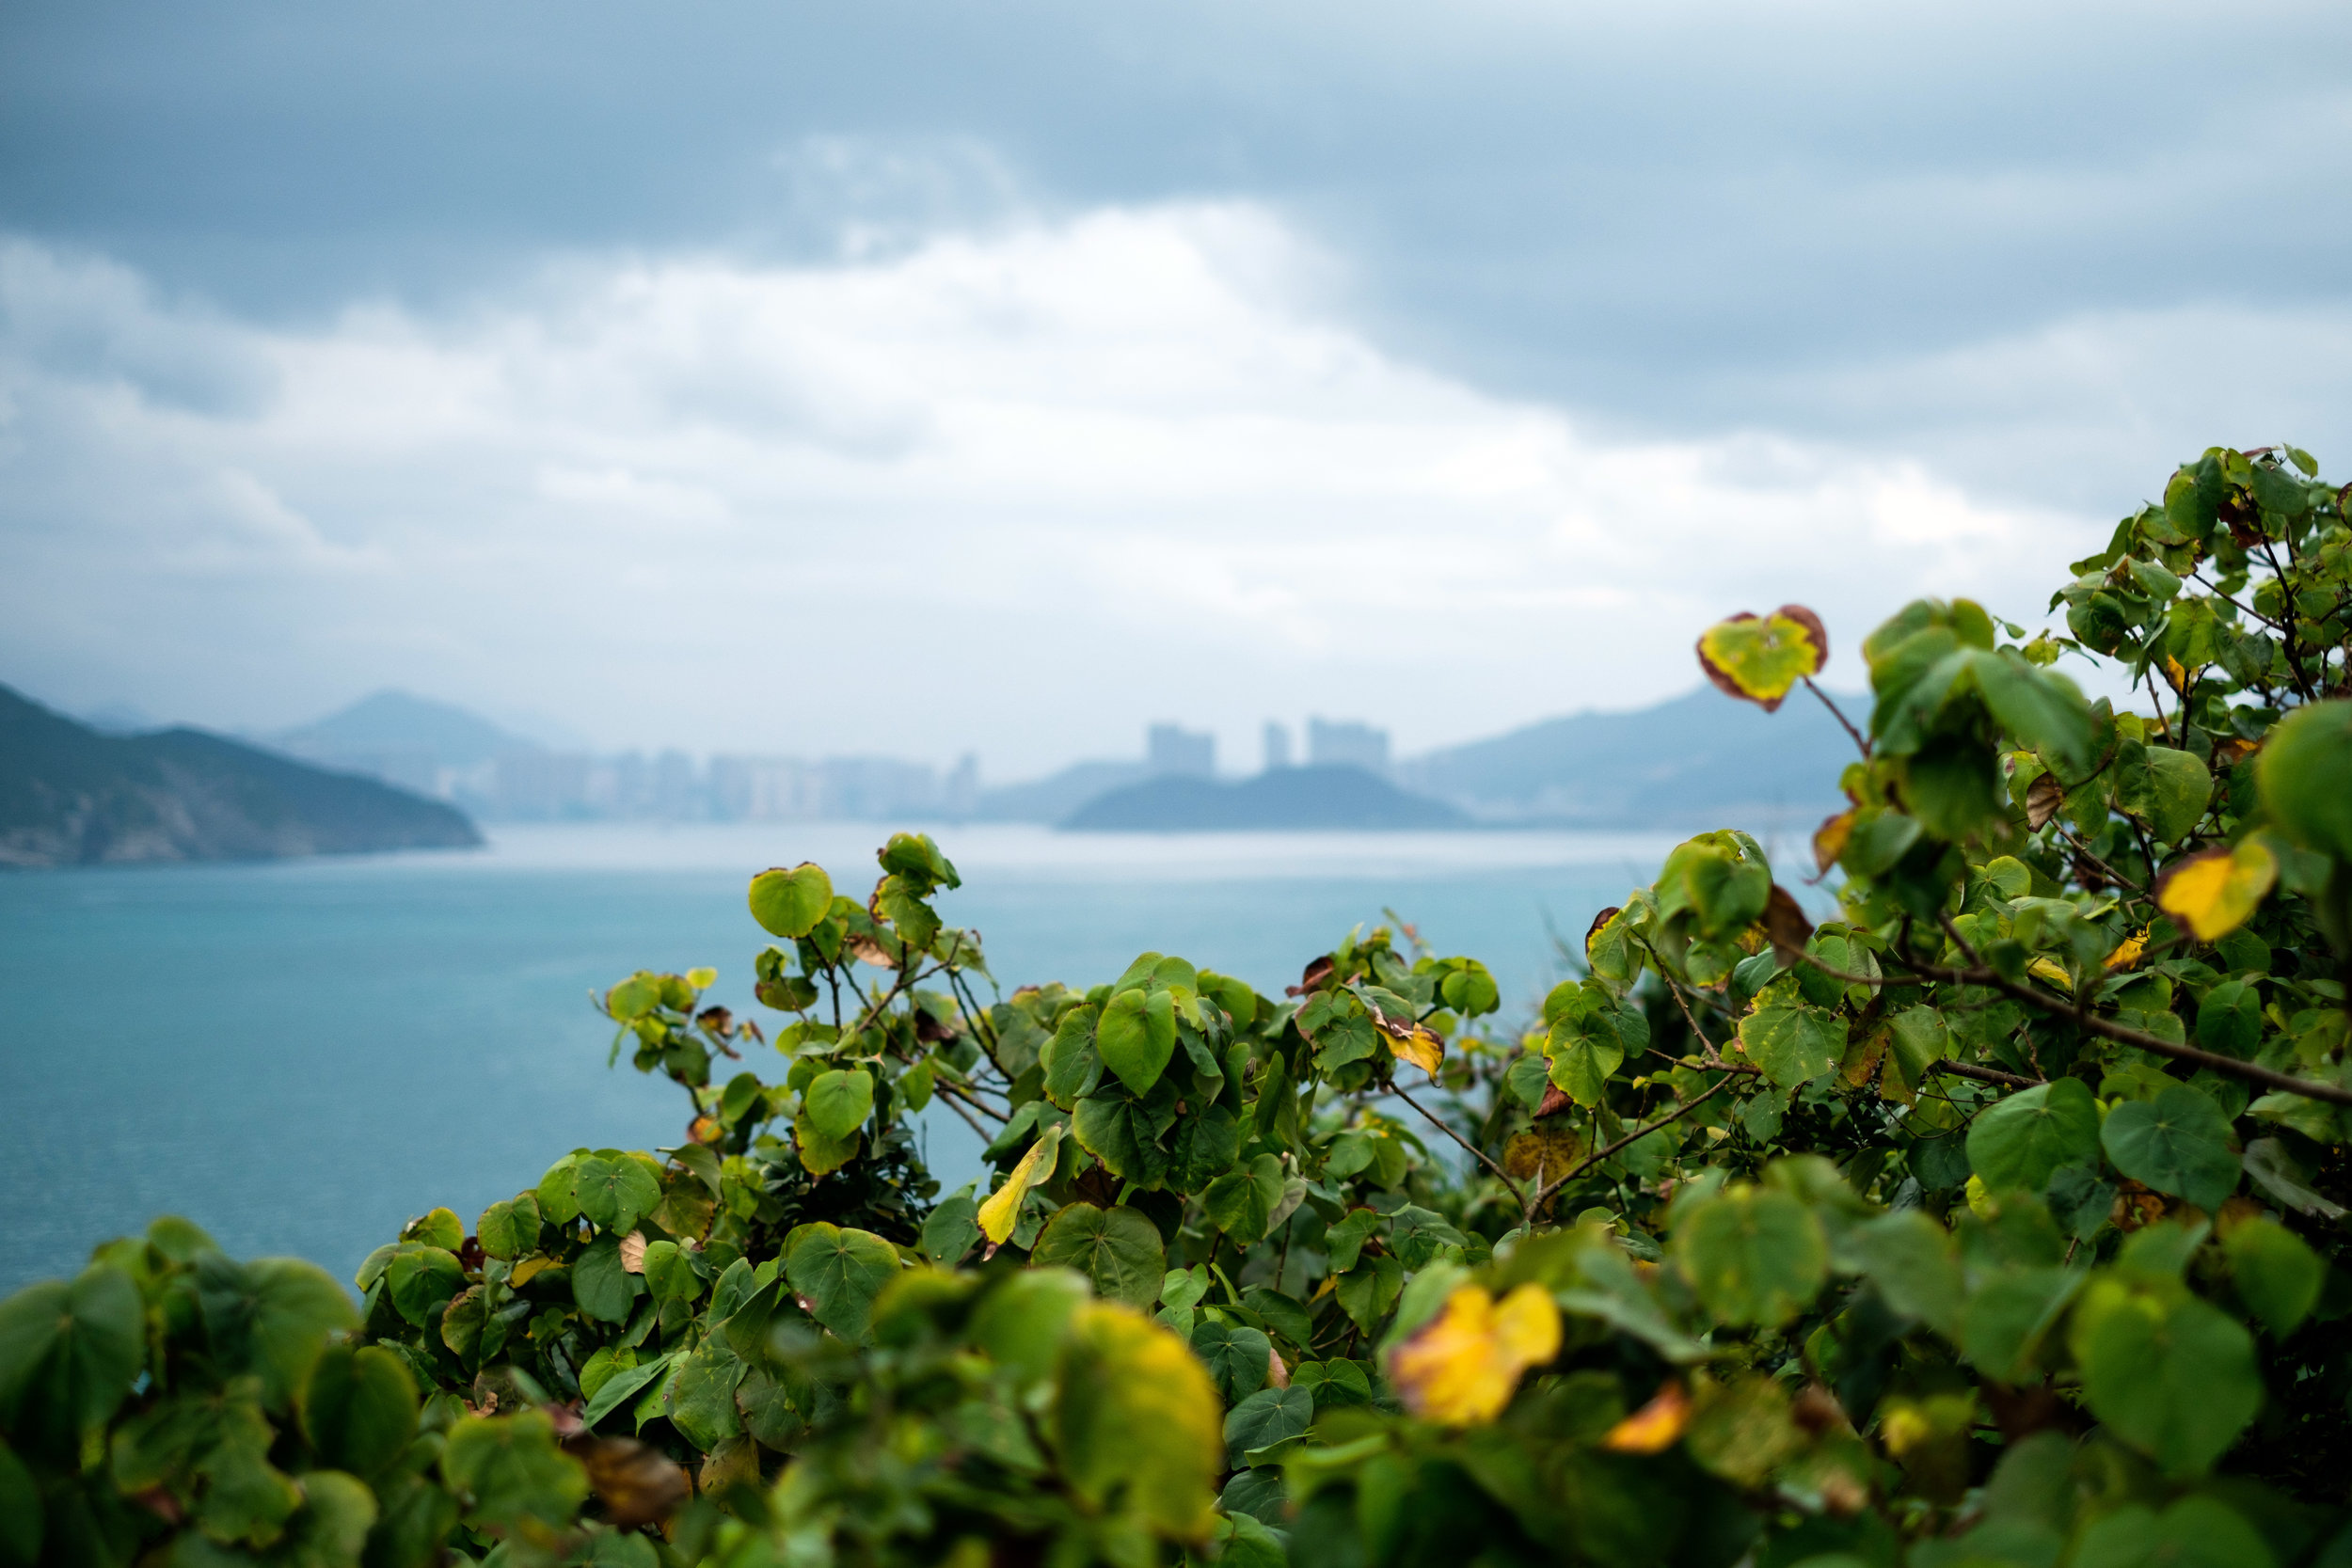 View from Prospect Point in Shek O, Hong Kong